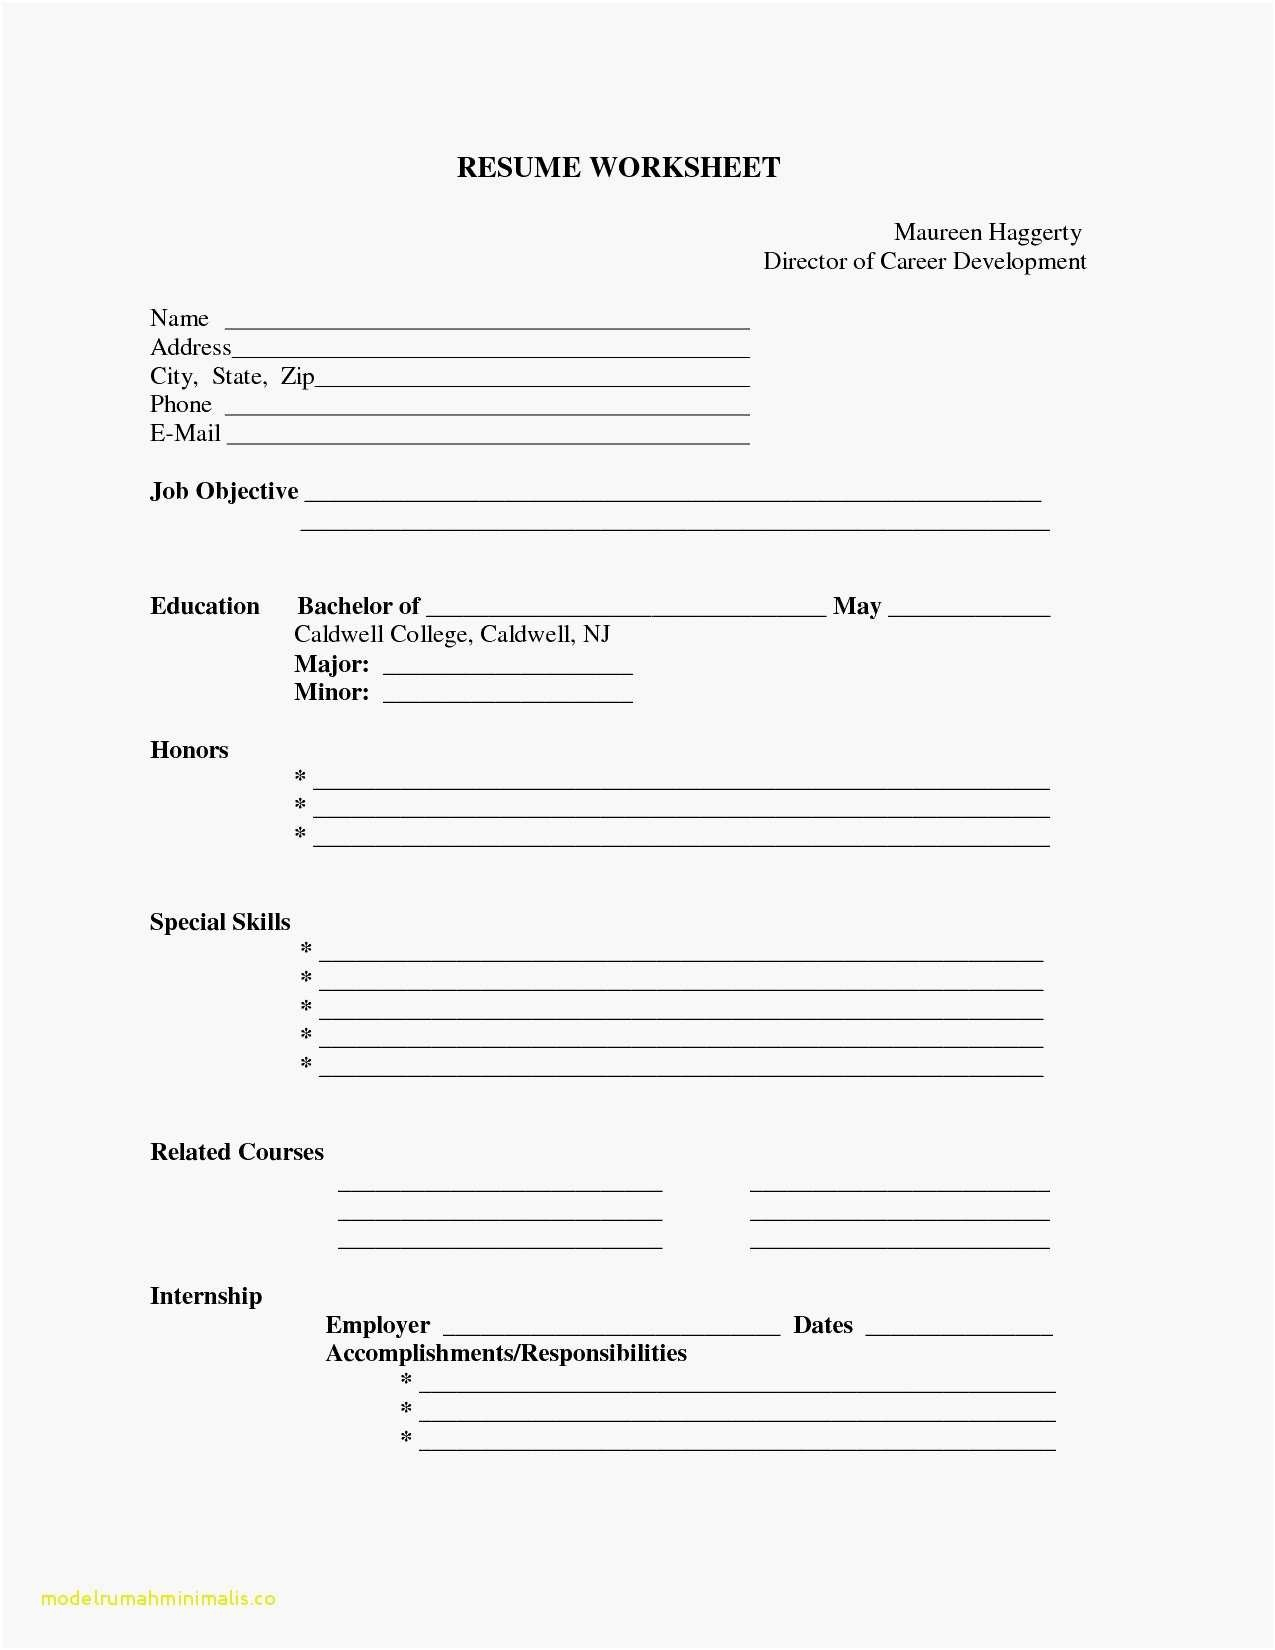 Teacher Resume Template Download - Best Resume Examples Luxury Fill In the Blank Resume Resume Examples